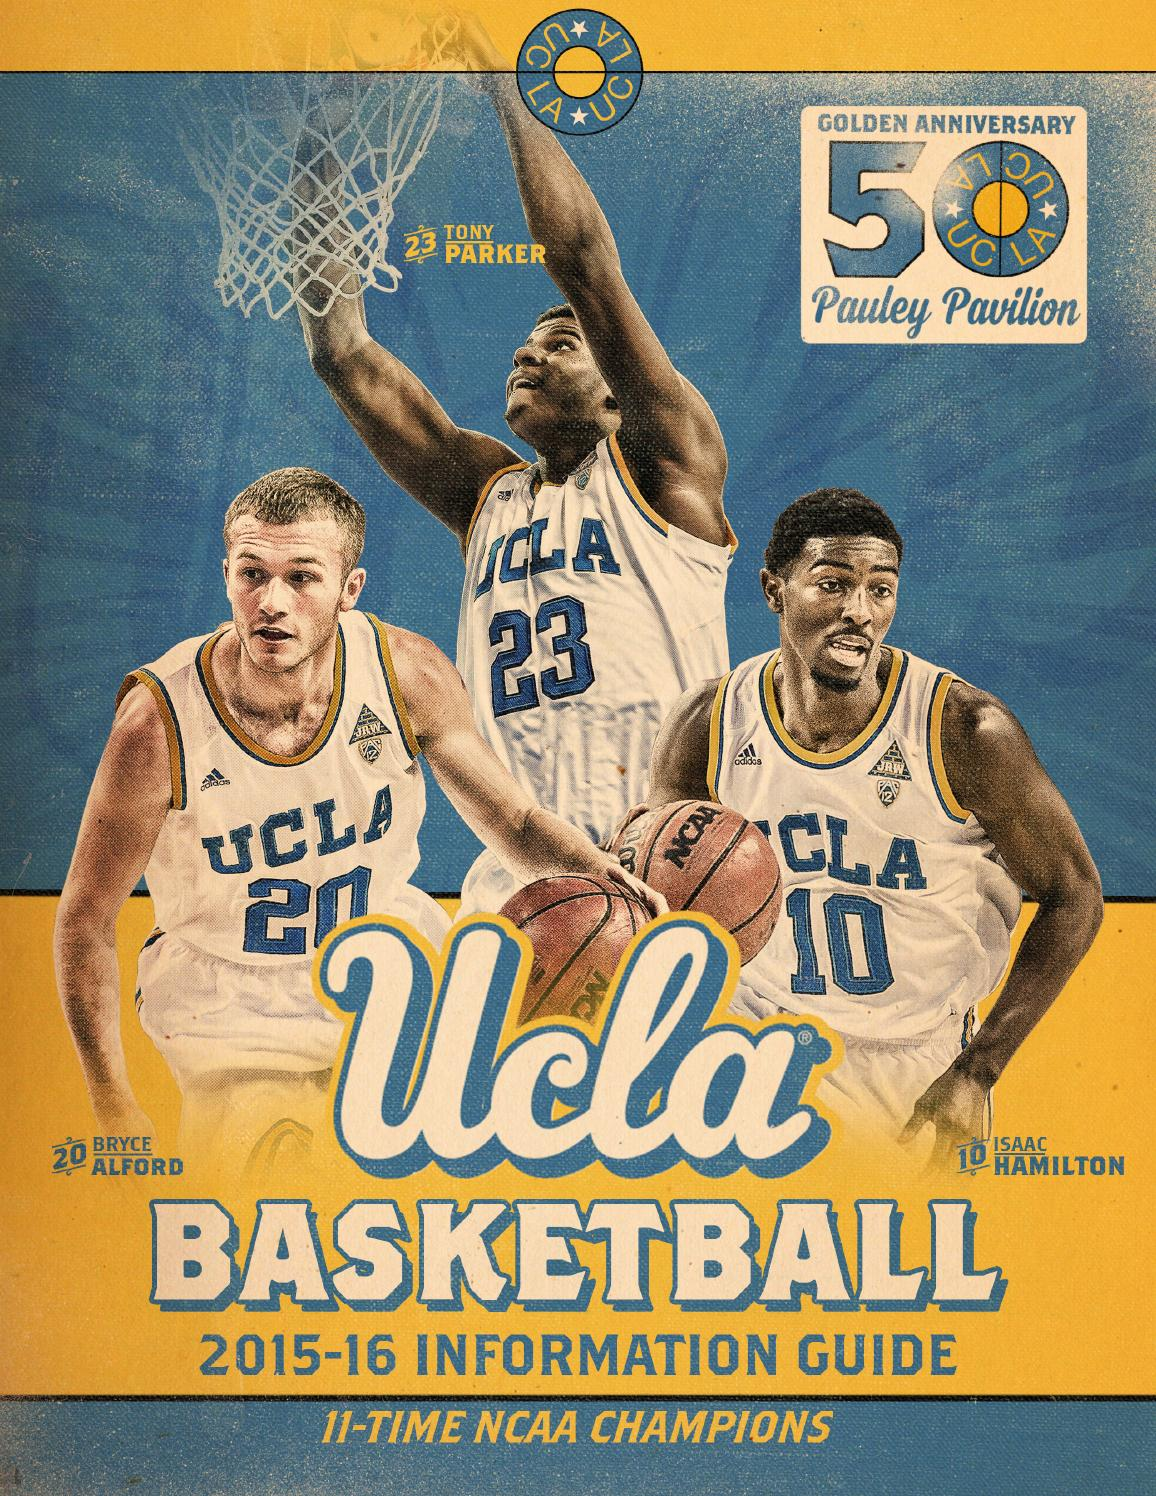 2015-16 UCLA Men's Basketball Information Guide by UCLA ...